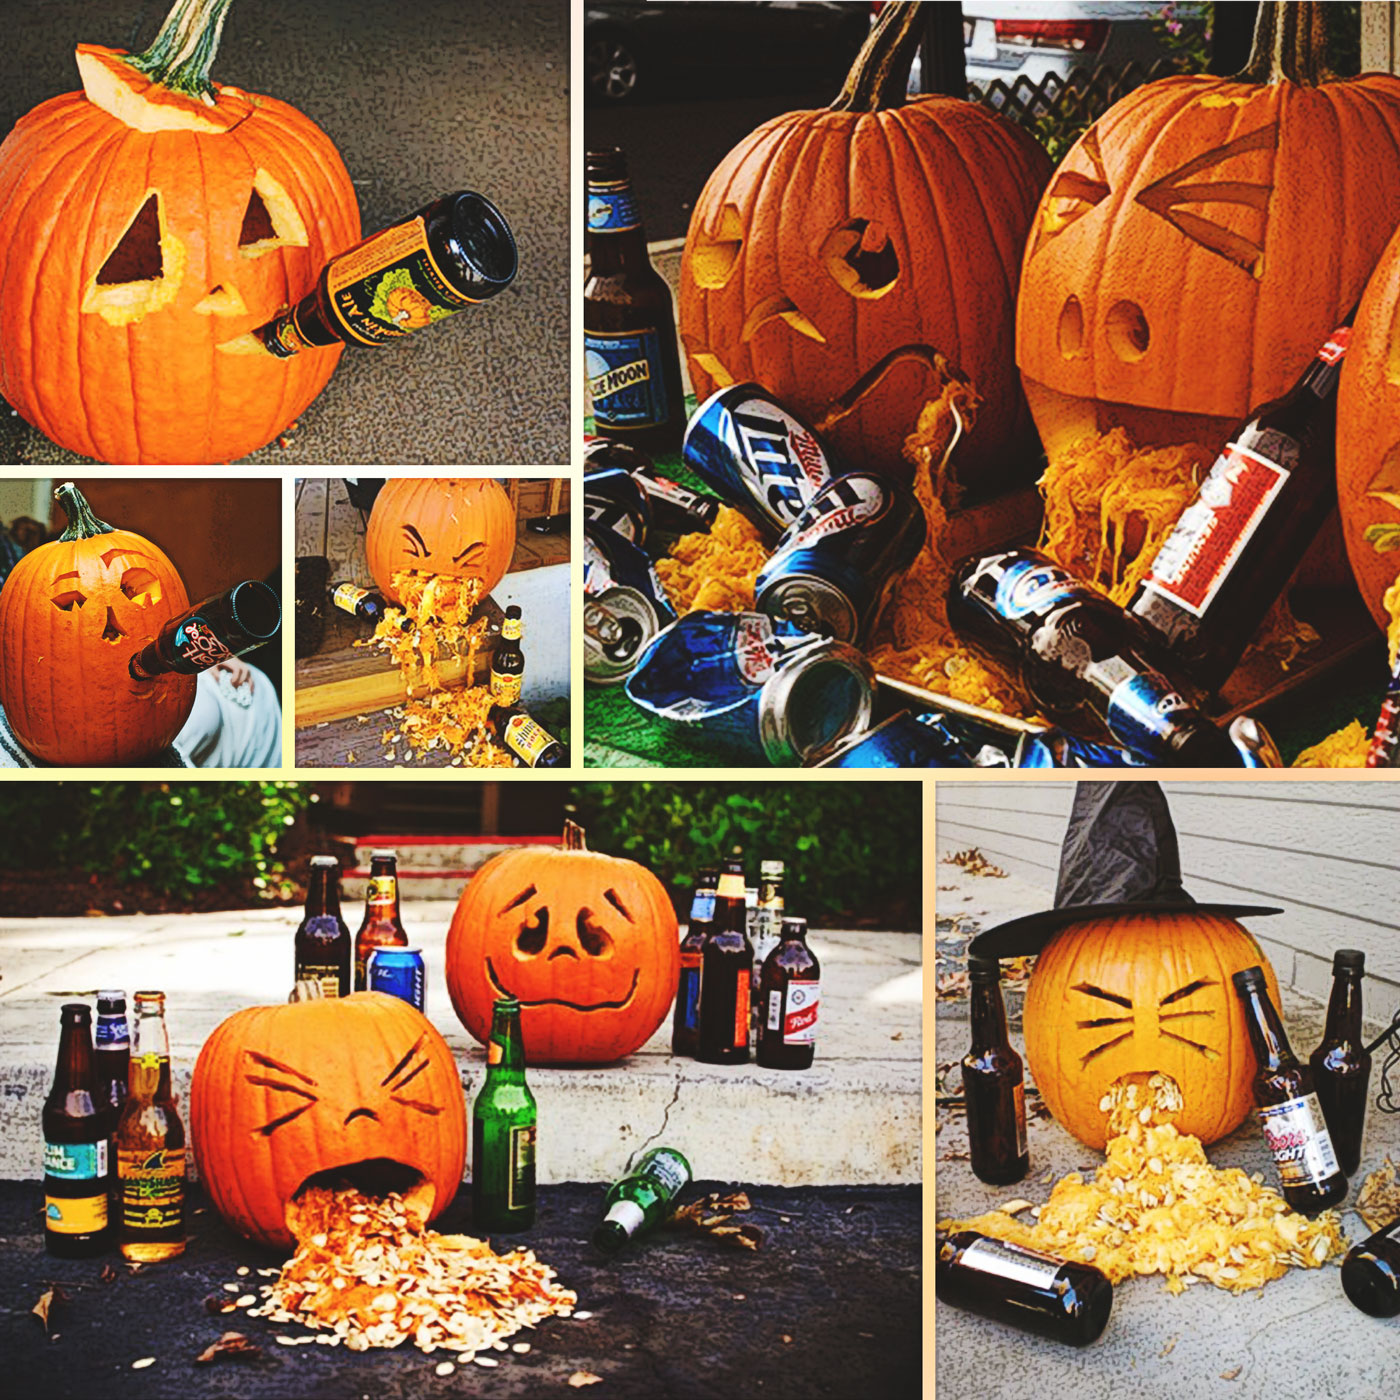 6 halloween pumpkin carving ideas for beer geeks seeking inspiration